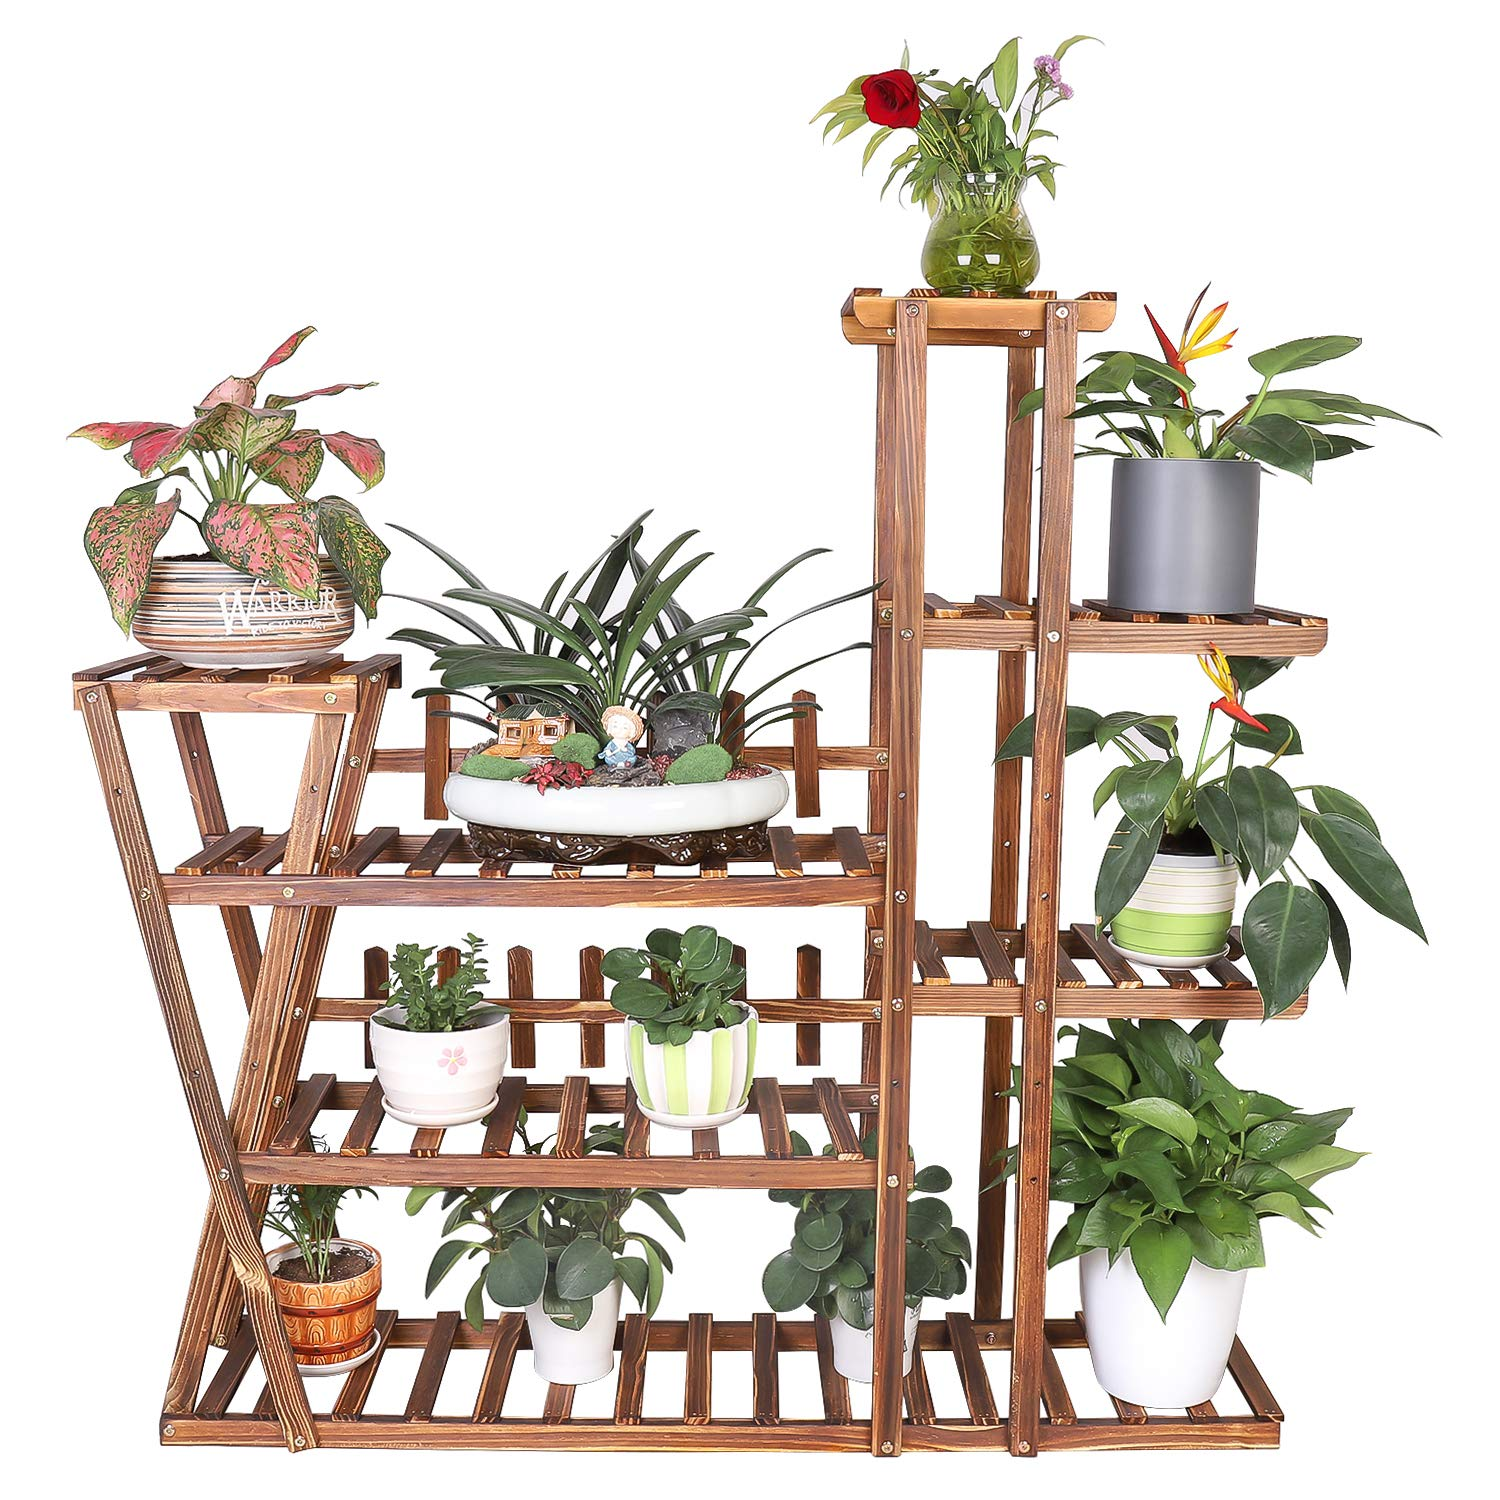 Unho Wood Plant Stand Indoor Plant Shelf Buy Online In Gibraltar At Desertcart